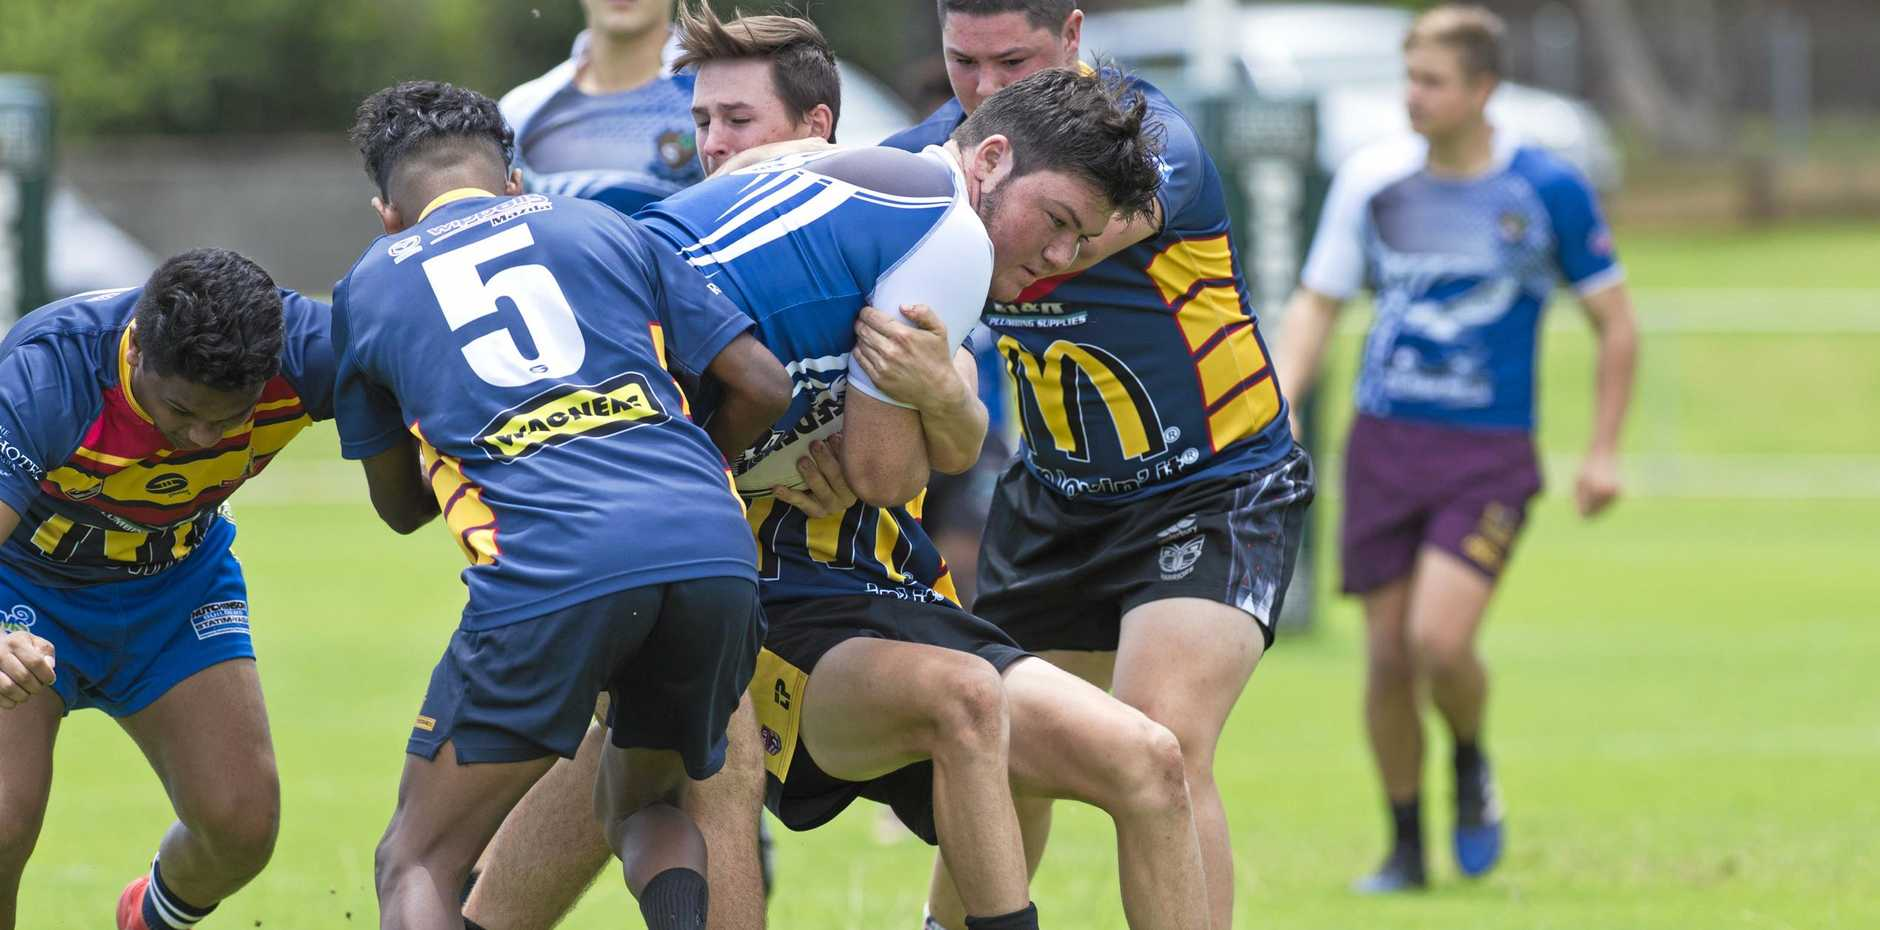 Conan Holding takes on the defence during Western Mustangs open trials which saw players vying for spots in the U18 and U20 state squads to compete next year.